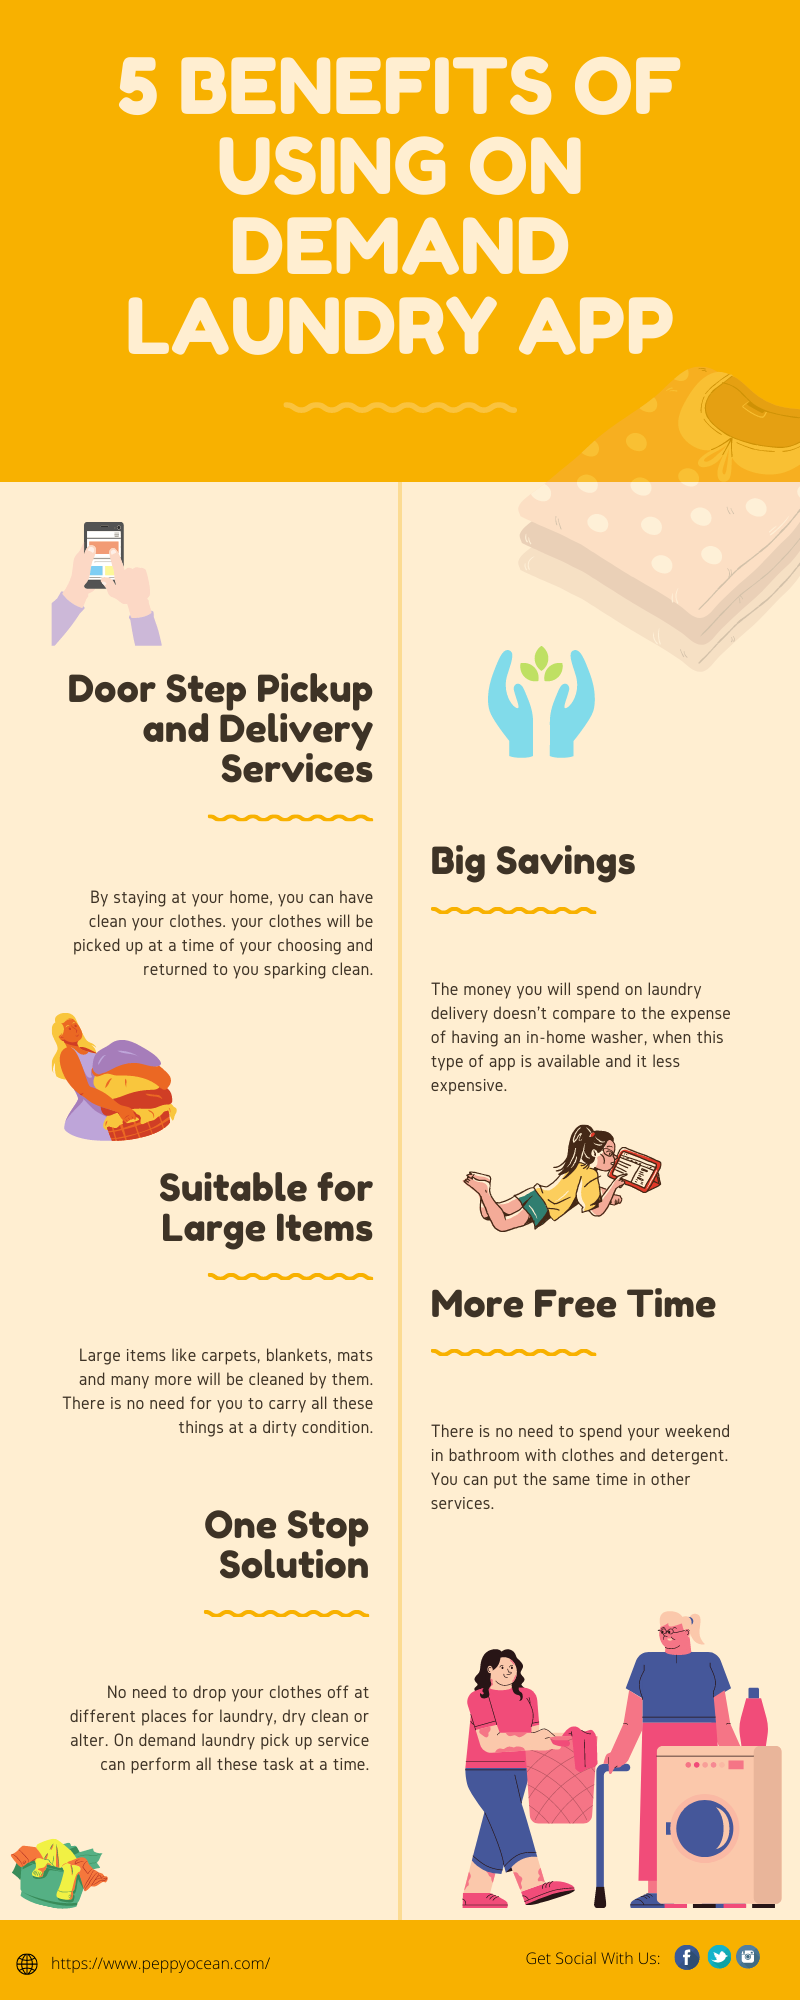 5 benefits of using on demand laundry app #infographic